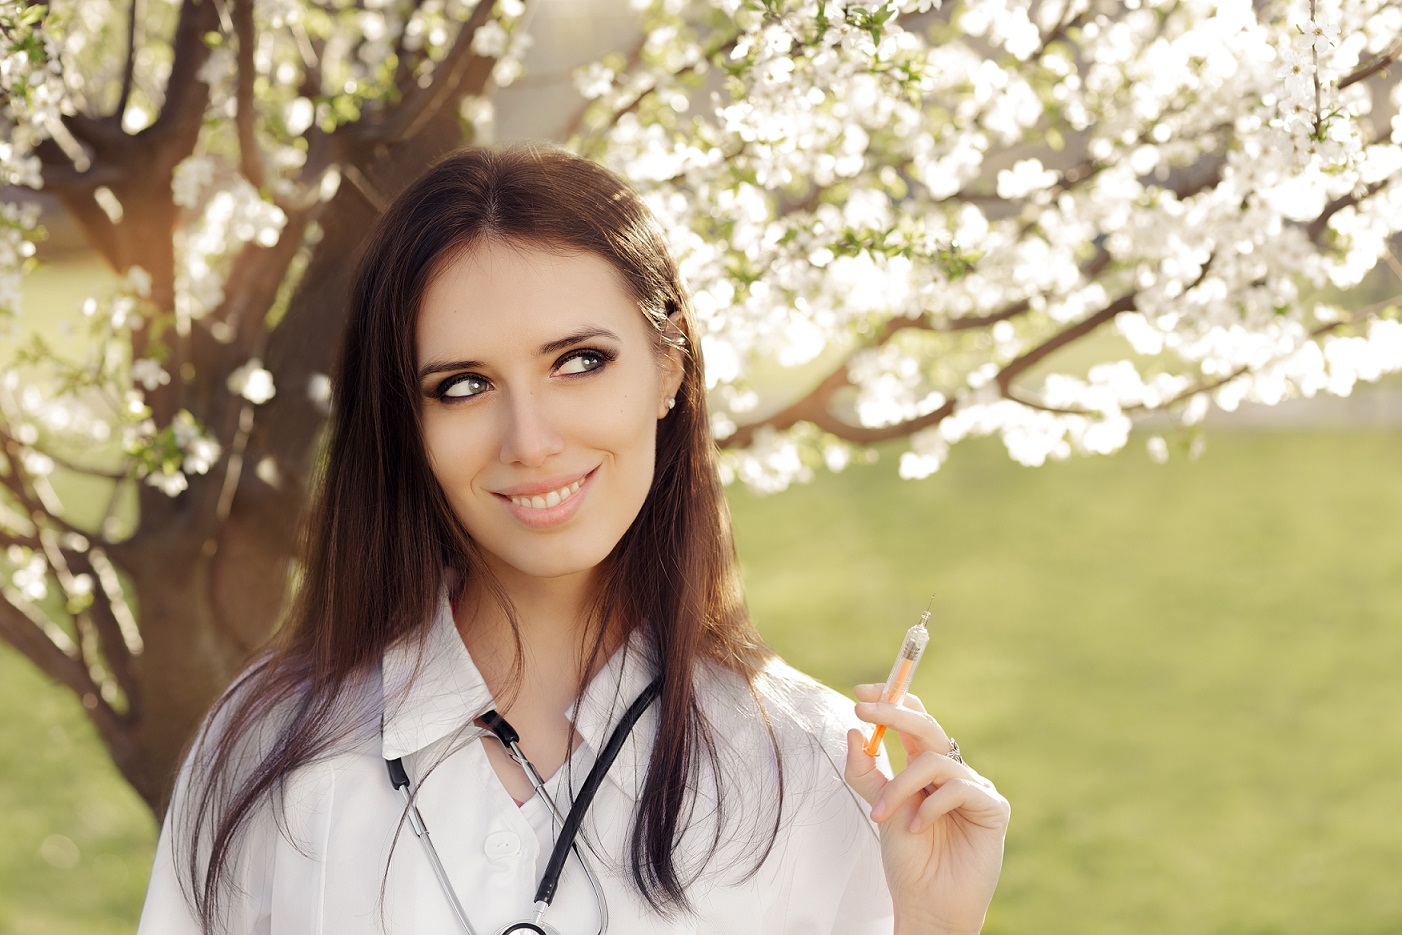 Spring Woman Doctor Smiling and Holding Vaccine Syringe